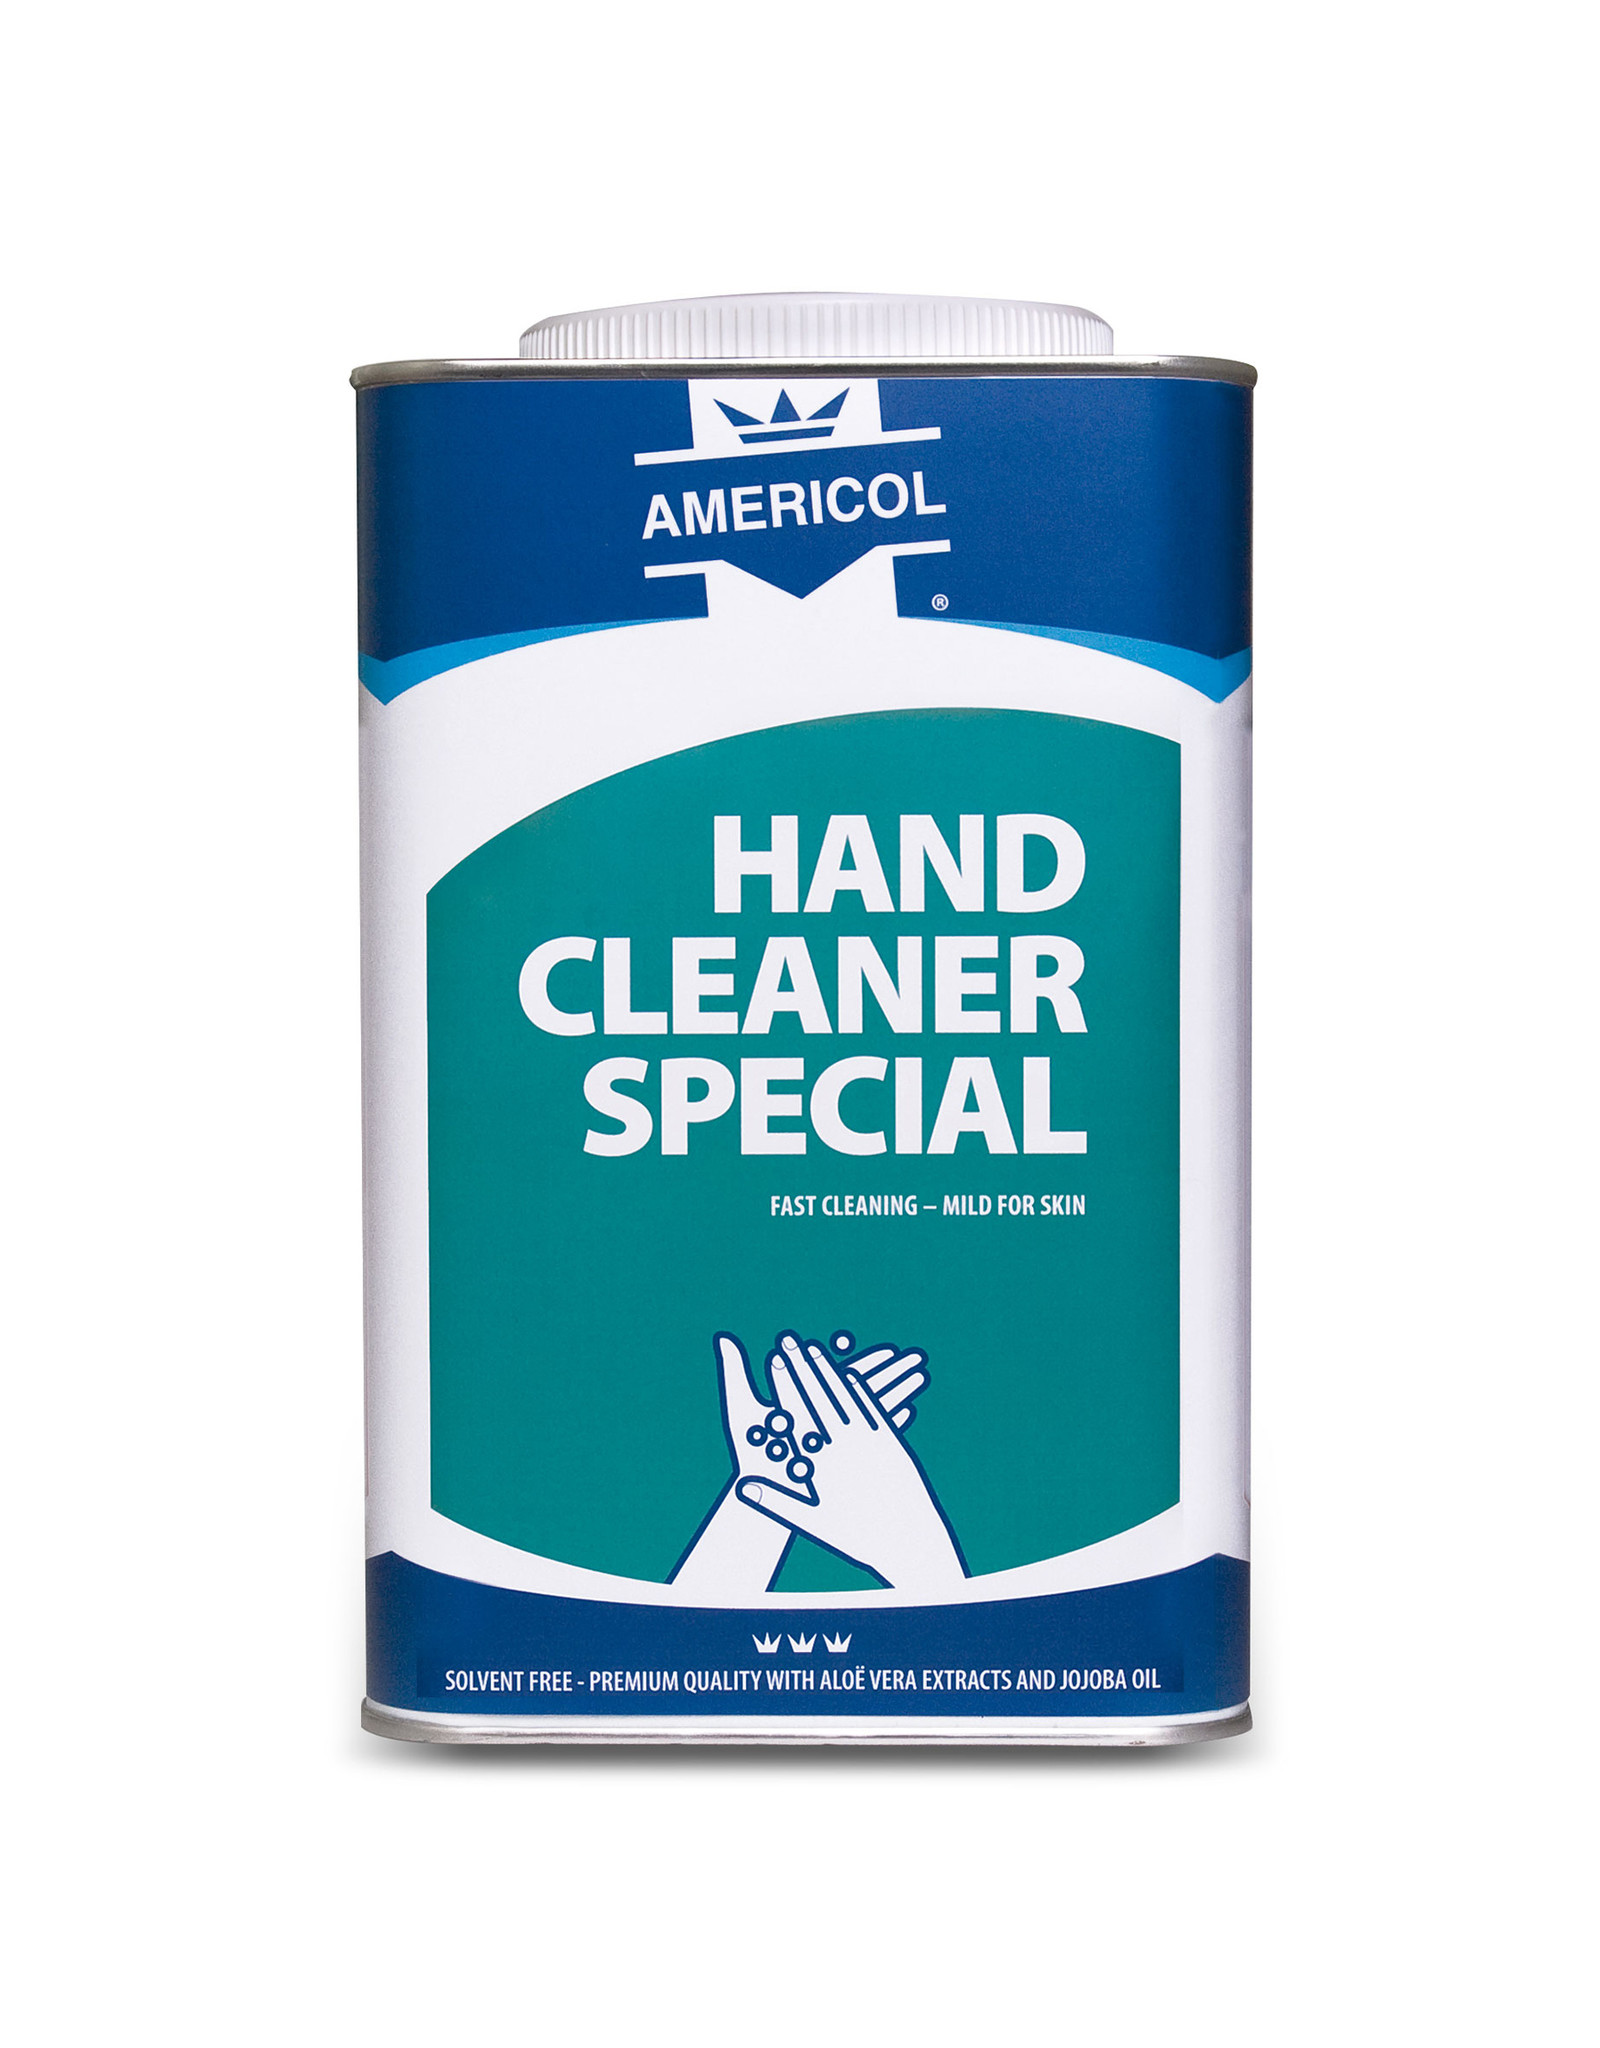 Americol Americol hand cleaner Special